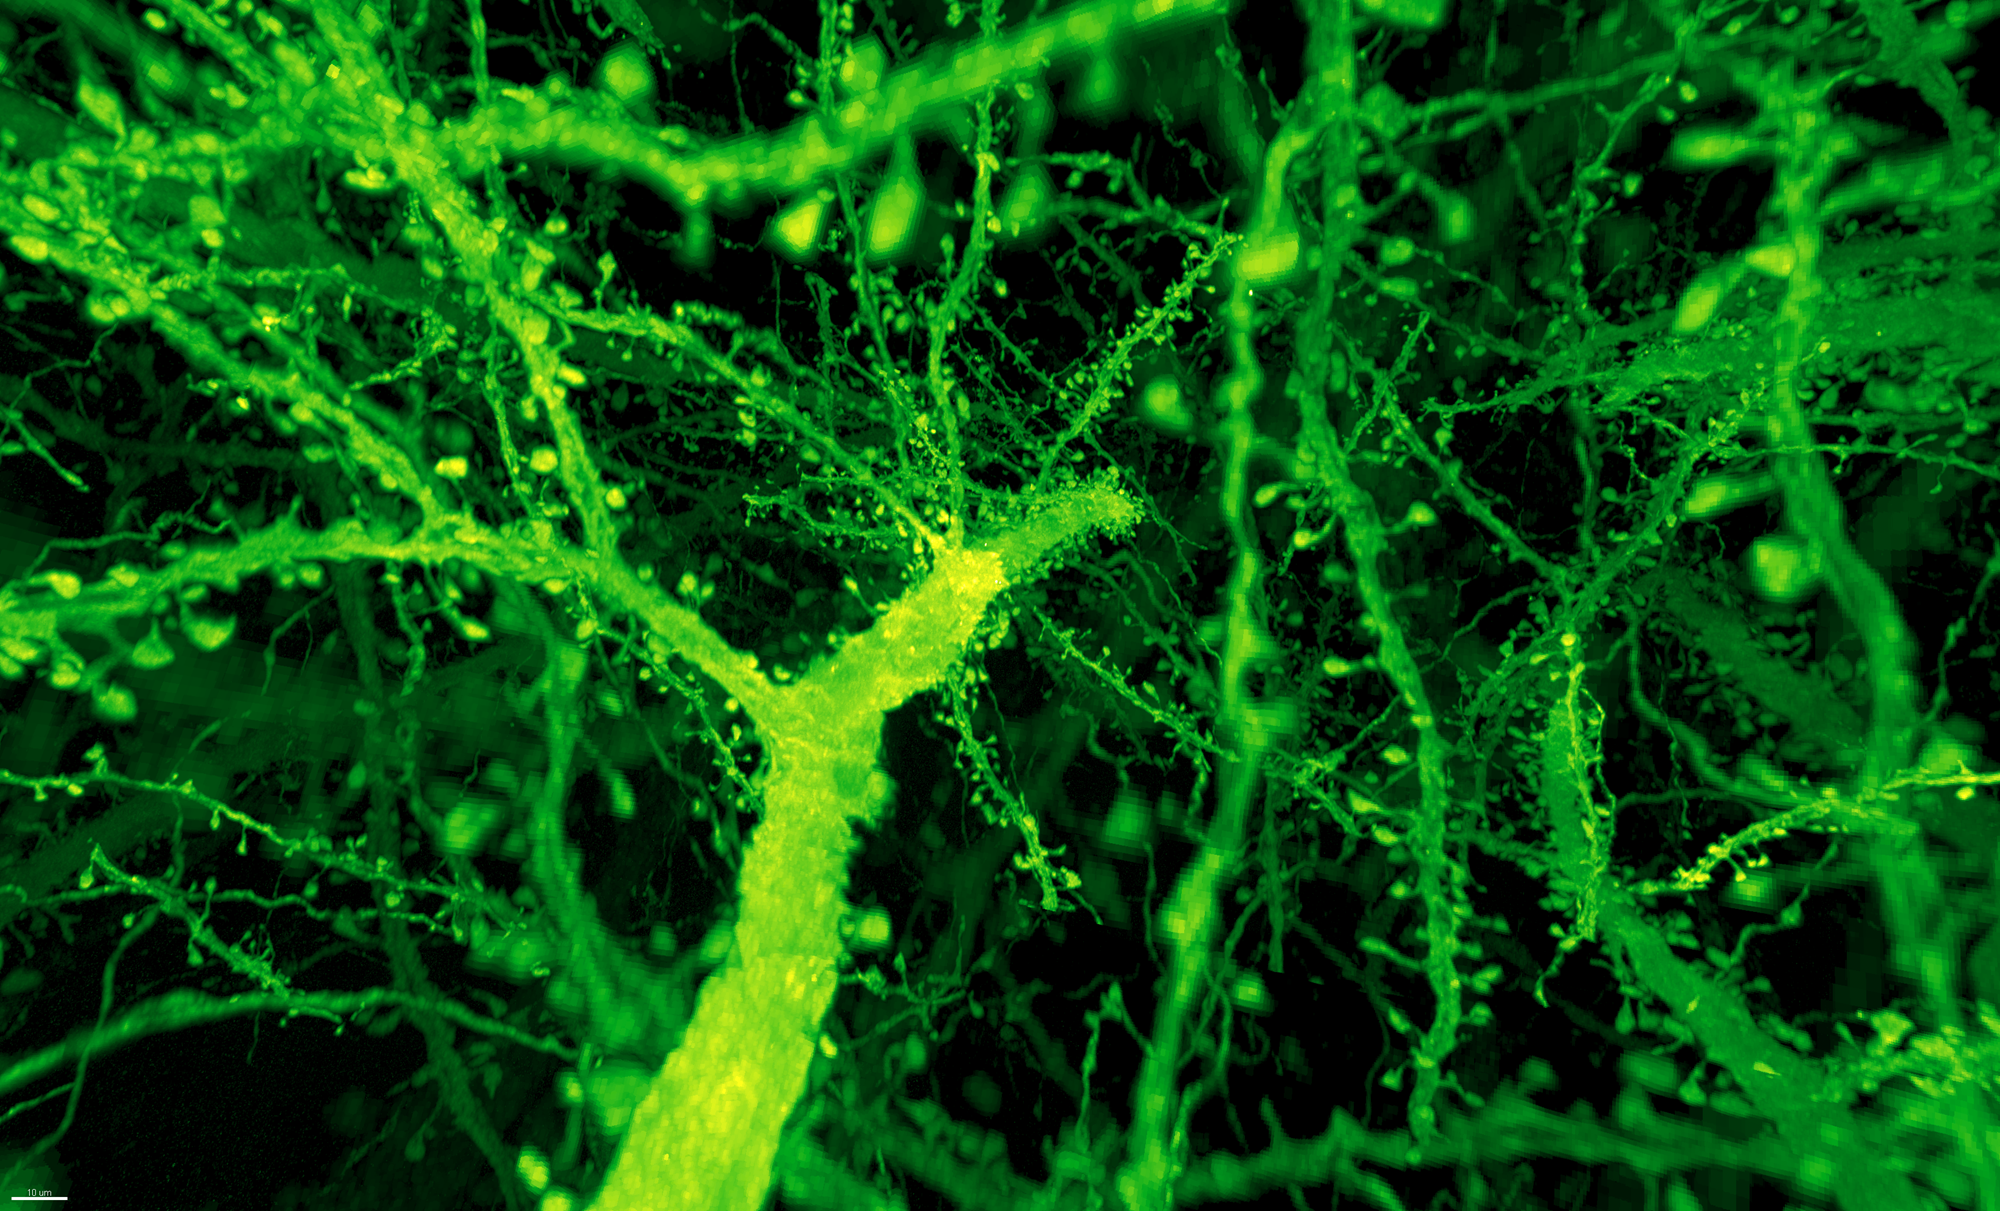 Dendritic spines in mouse brain